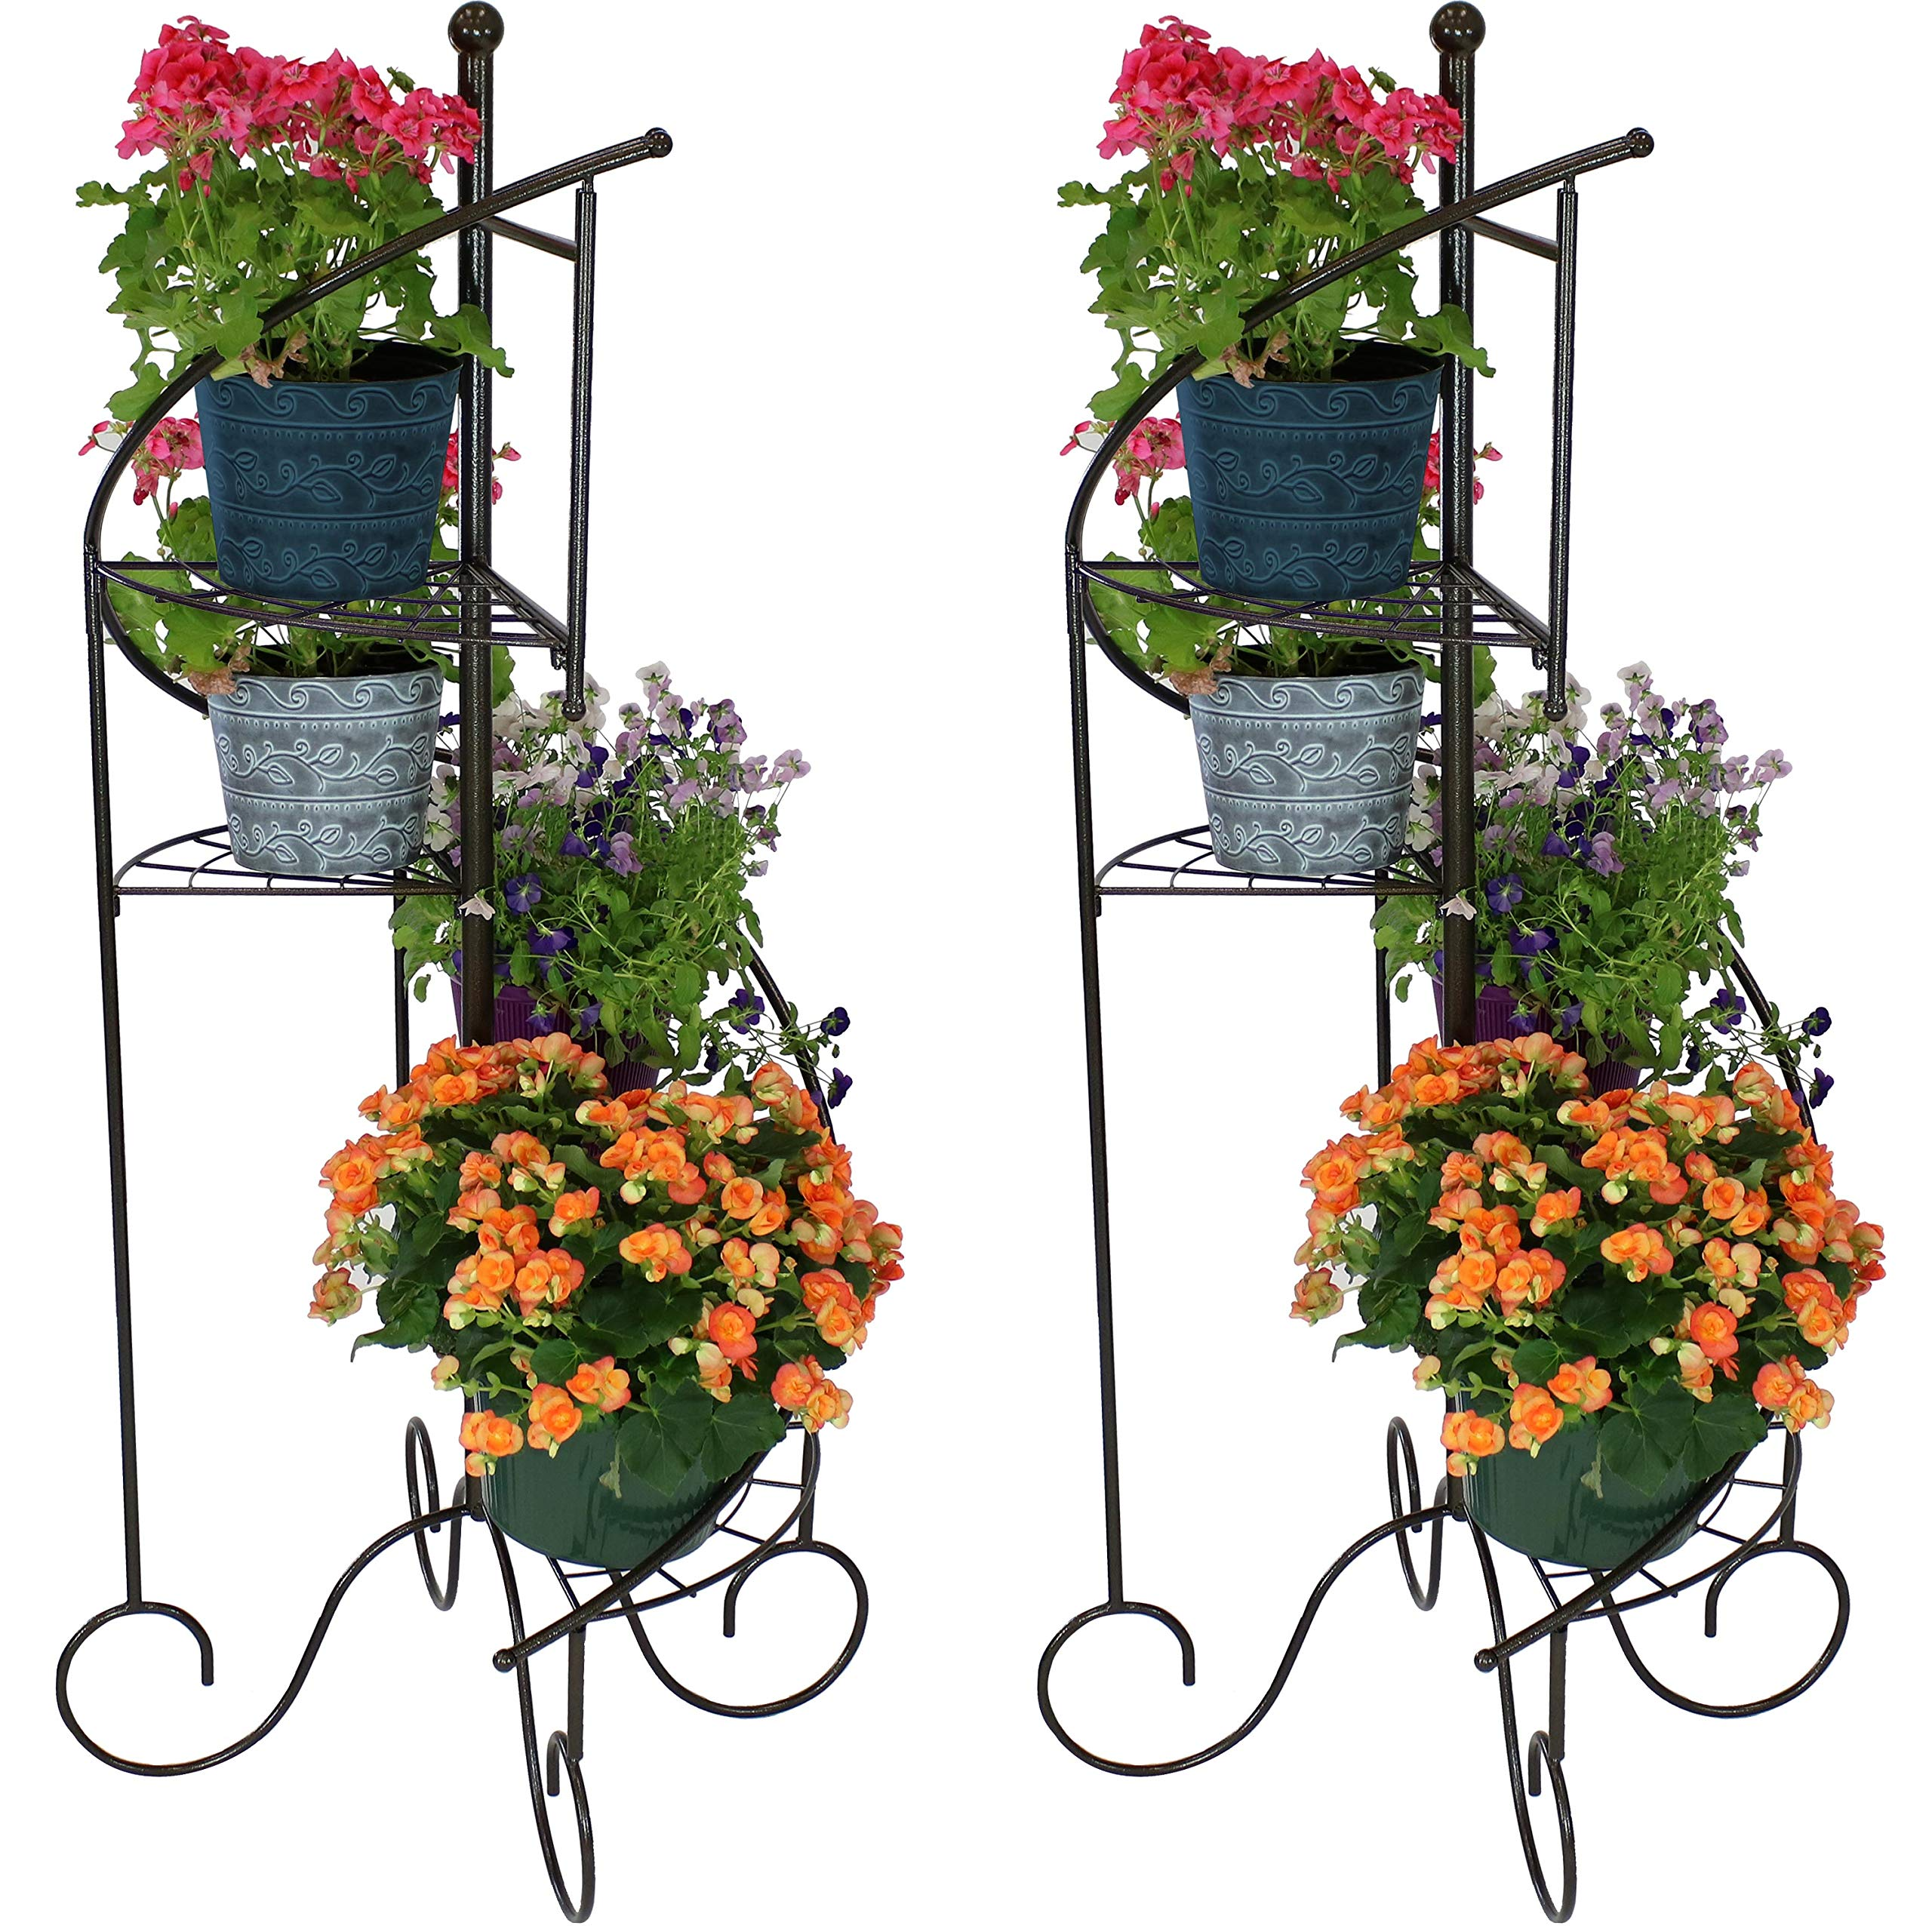 Sunnydaze 4-Tier Metal Iron Plant Stand, Spiral Staircase Design, Set of 2, 56-Inch